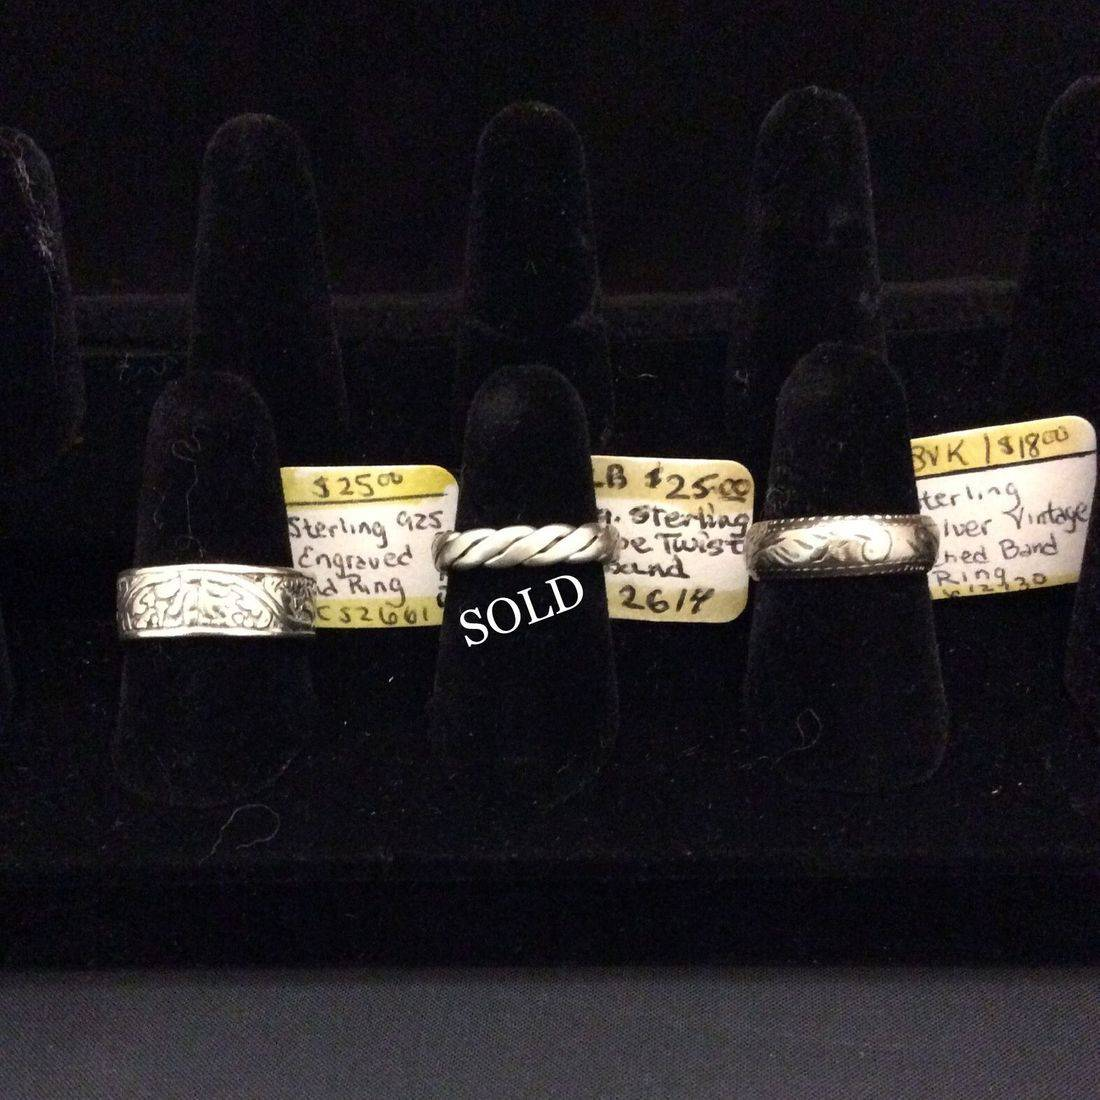 Sterling .925 Engraved, Band Ring  $25,  Vin. Sterling Sil., Rope Twist Band  $25,  Vin. Sterling Sil., Etched Band, Ring  $18.00